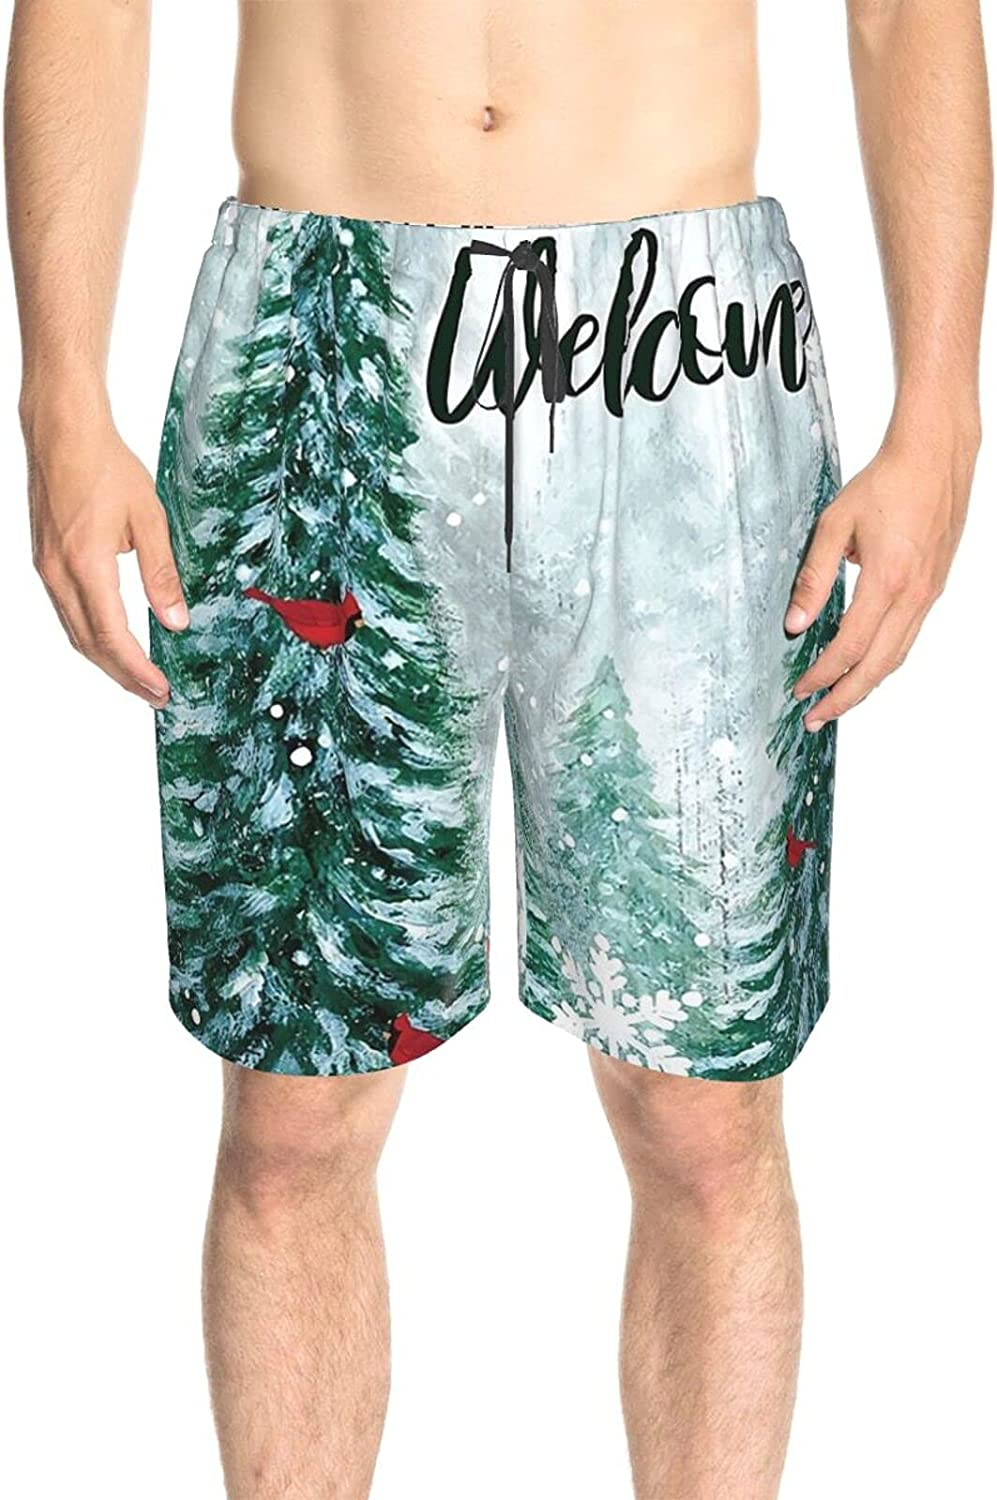 Mens Swim Trunks Winter Welcome and Birds Swim Short Boardshort Drawstring 3D Printed Surfing Board Shorts with Pockets